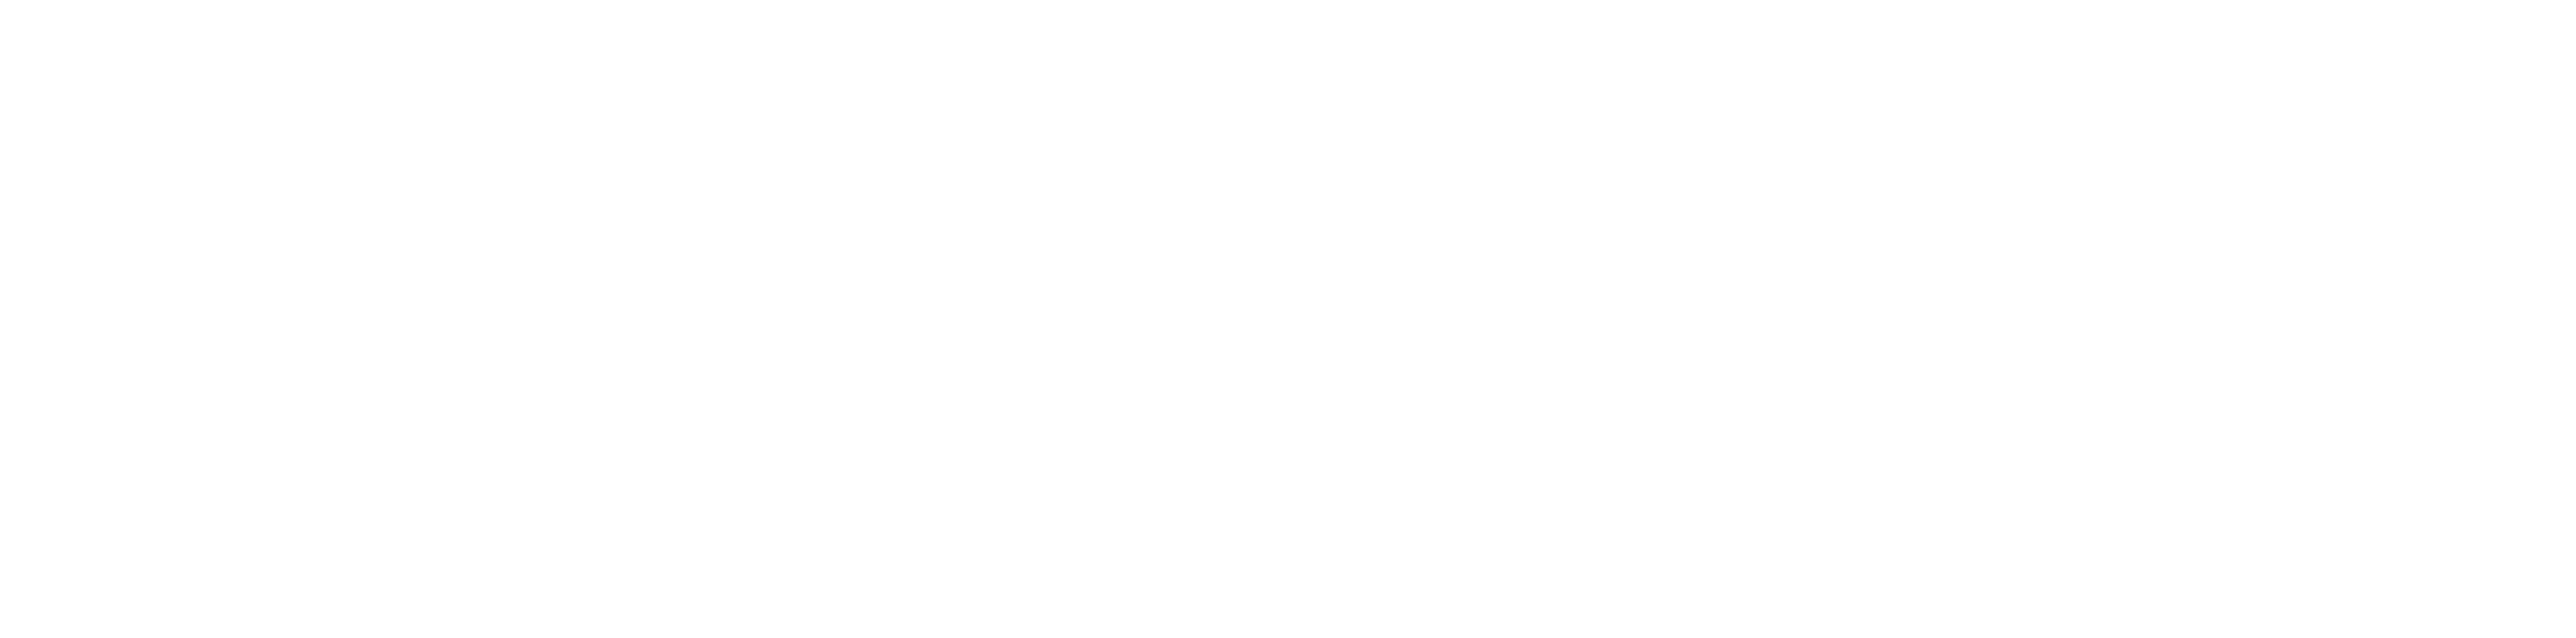 Digital Blue Beagle Logo